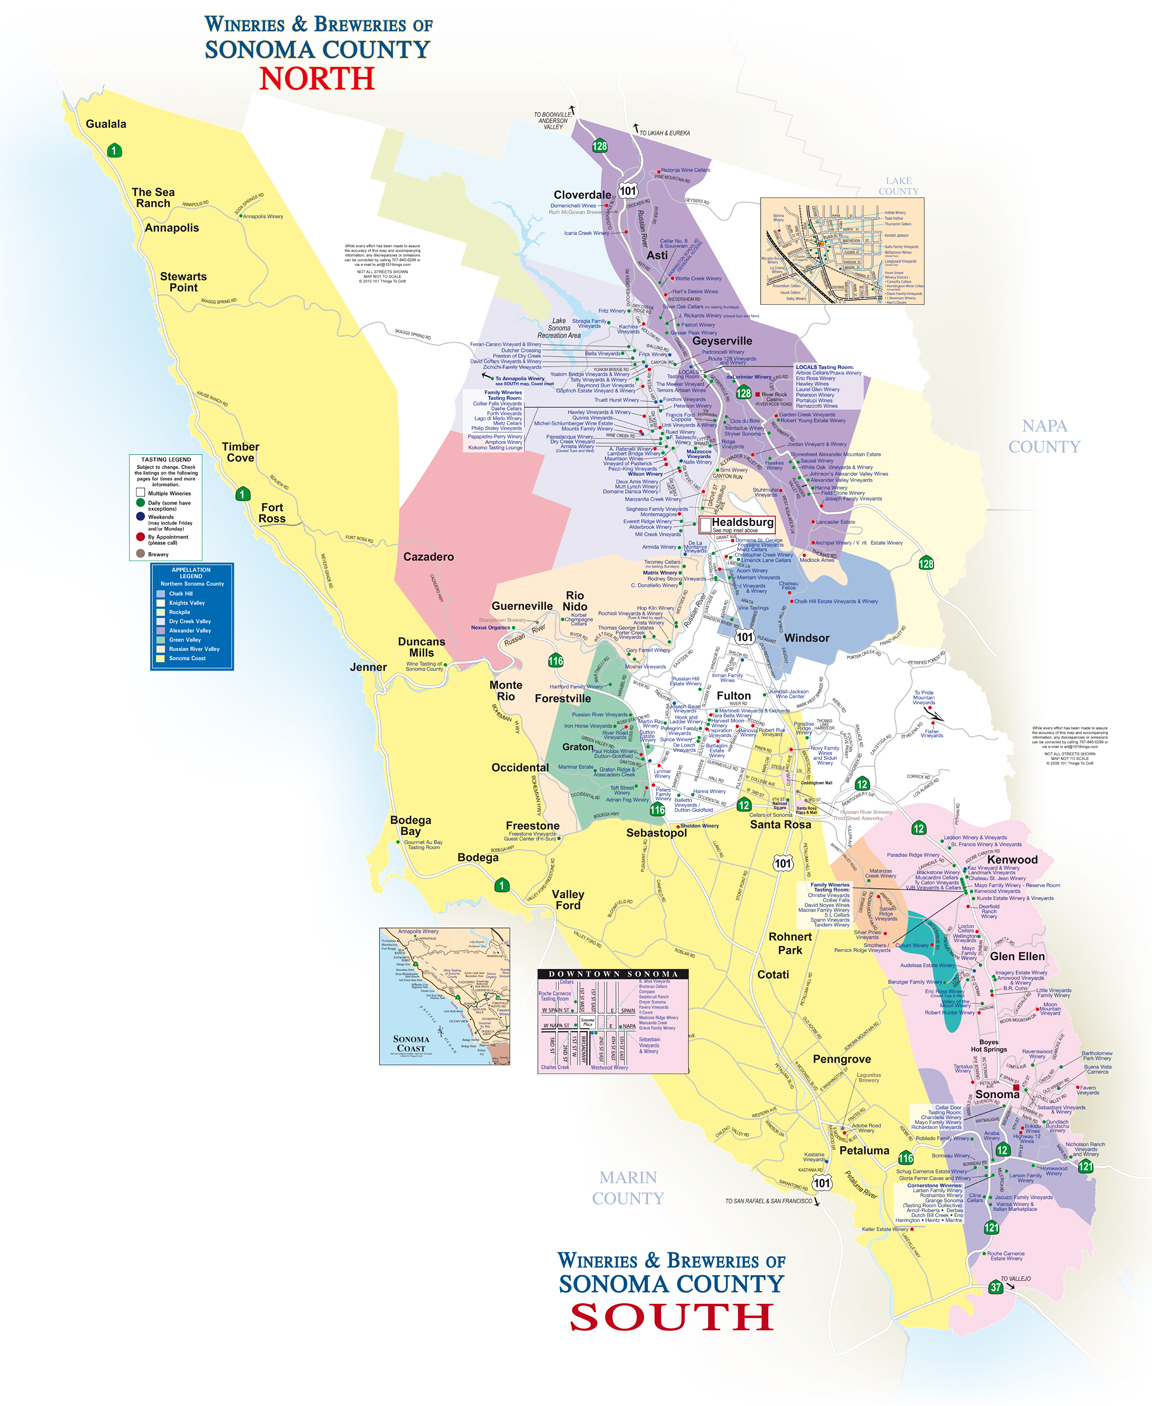 Sonoma County Winery & Brewery Map - 101 Things To Do Wine Country - Map Of Wineries In Sonoma County California